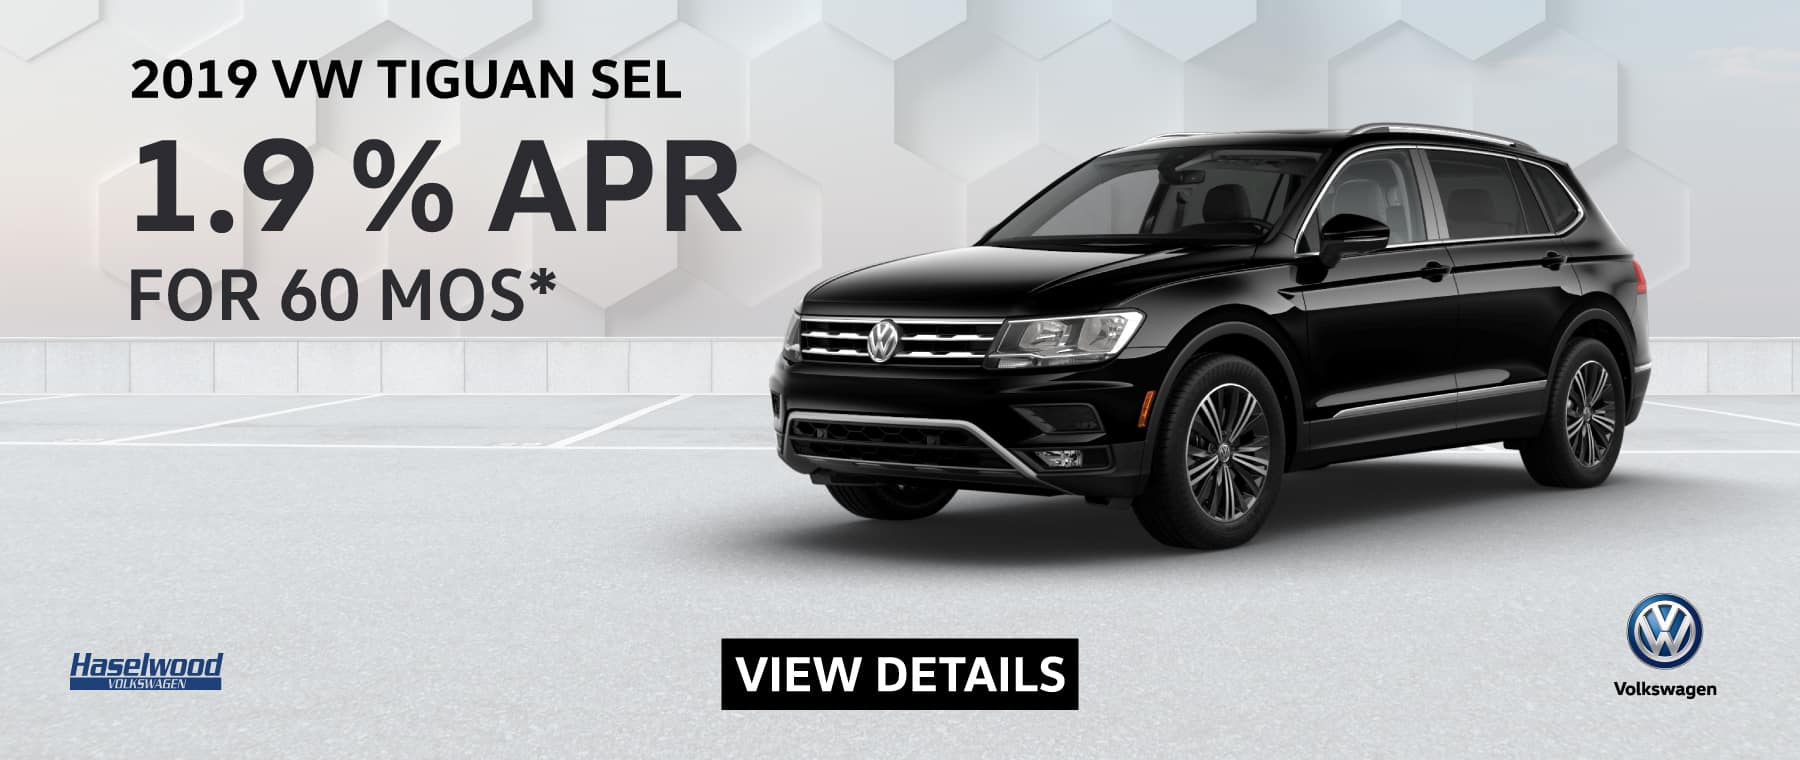 2019 Volkswagen Tiguan SEL (featured vehicle)  1.9% APR for 60 mos.    * Offer valid on 2019 Volkswagen Tiguan SEL. 1.9% APR for 60 mos. MSRP starting at $34,475.  Valid on Vin: 3VV2B7AX7KM018777, 3VV2B7AX1KM024560, 3VV2B7AX9KM065860. No down payment required; includes a $595 acquisition fee, financed through Volkswagen Credit. No security deposit required. For highly qualified customers on approved top tier credit through Volkswagen Credit. Subject to credit approval. 60 monthly payments required. A negotiable dealer documentary service fee of up to $150 may be added to the sale price or capitalized cost. See dealer for complete details and restrictions. 6 years/72,000 miles (whichever occurs first). New Vehicle Limited Warranty on MY2019 and newer VW vehicles, excluding e-Golf. See owner's literature or dealer for warranty exclusions and limitations. Exp. 6/30/2019.